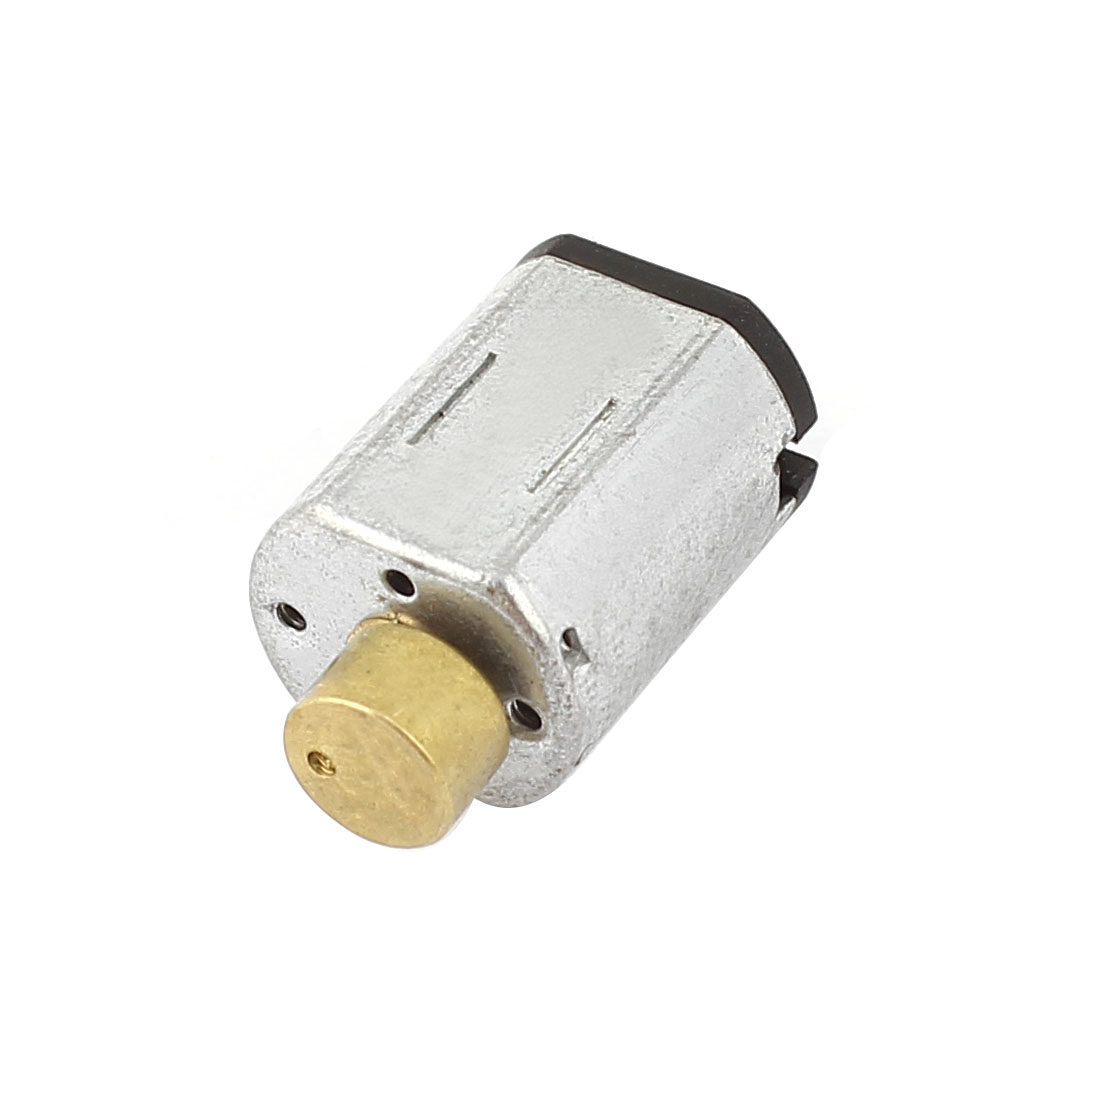 DC 1.25-3.7V 22000RPM High Torque Mini Micro Vibration Motor for Massager